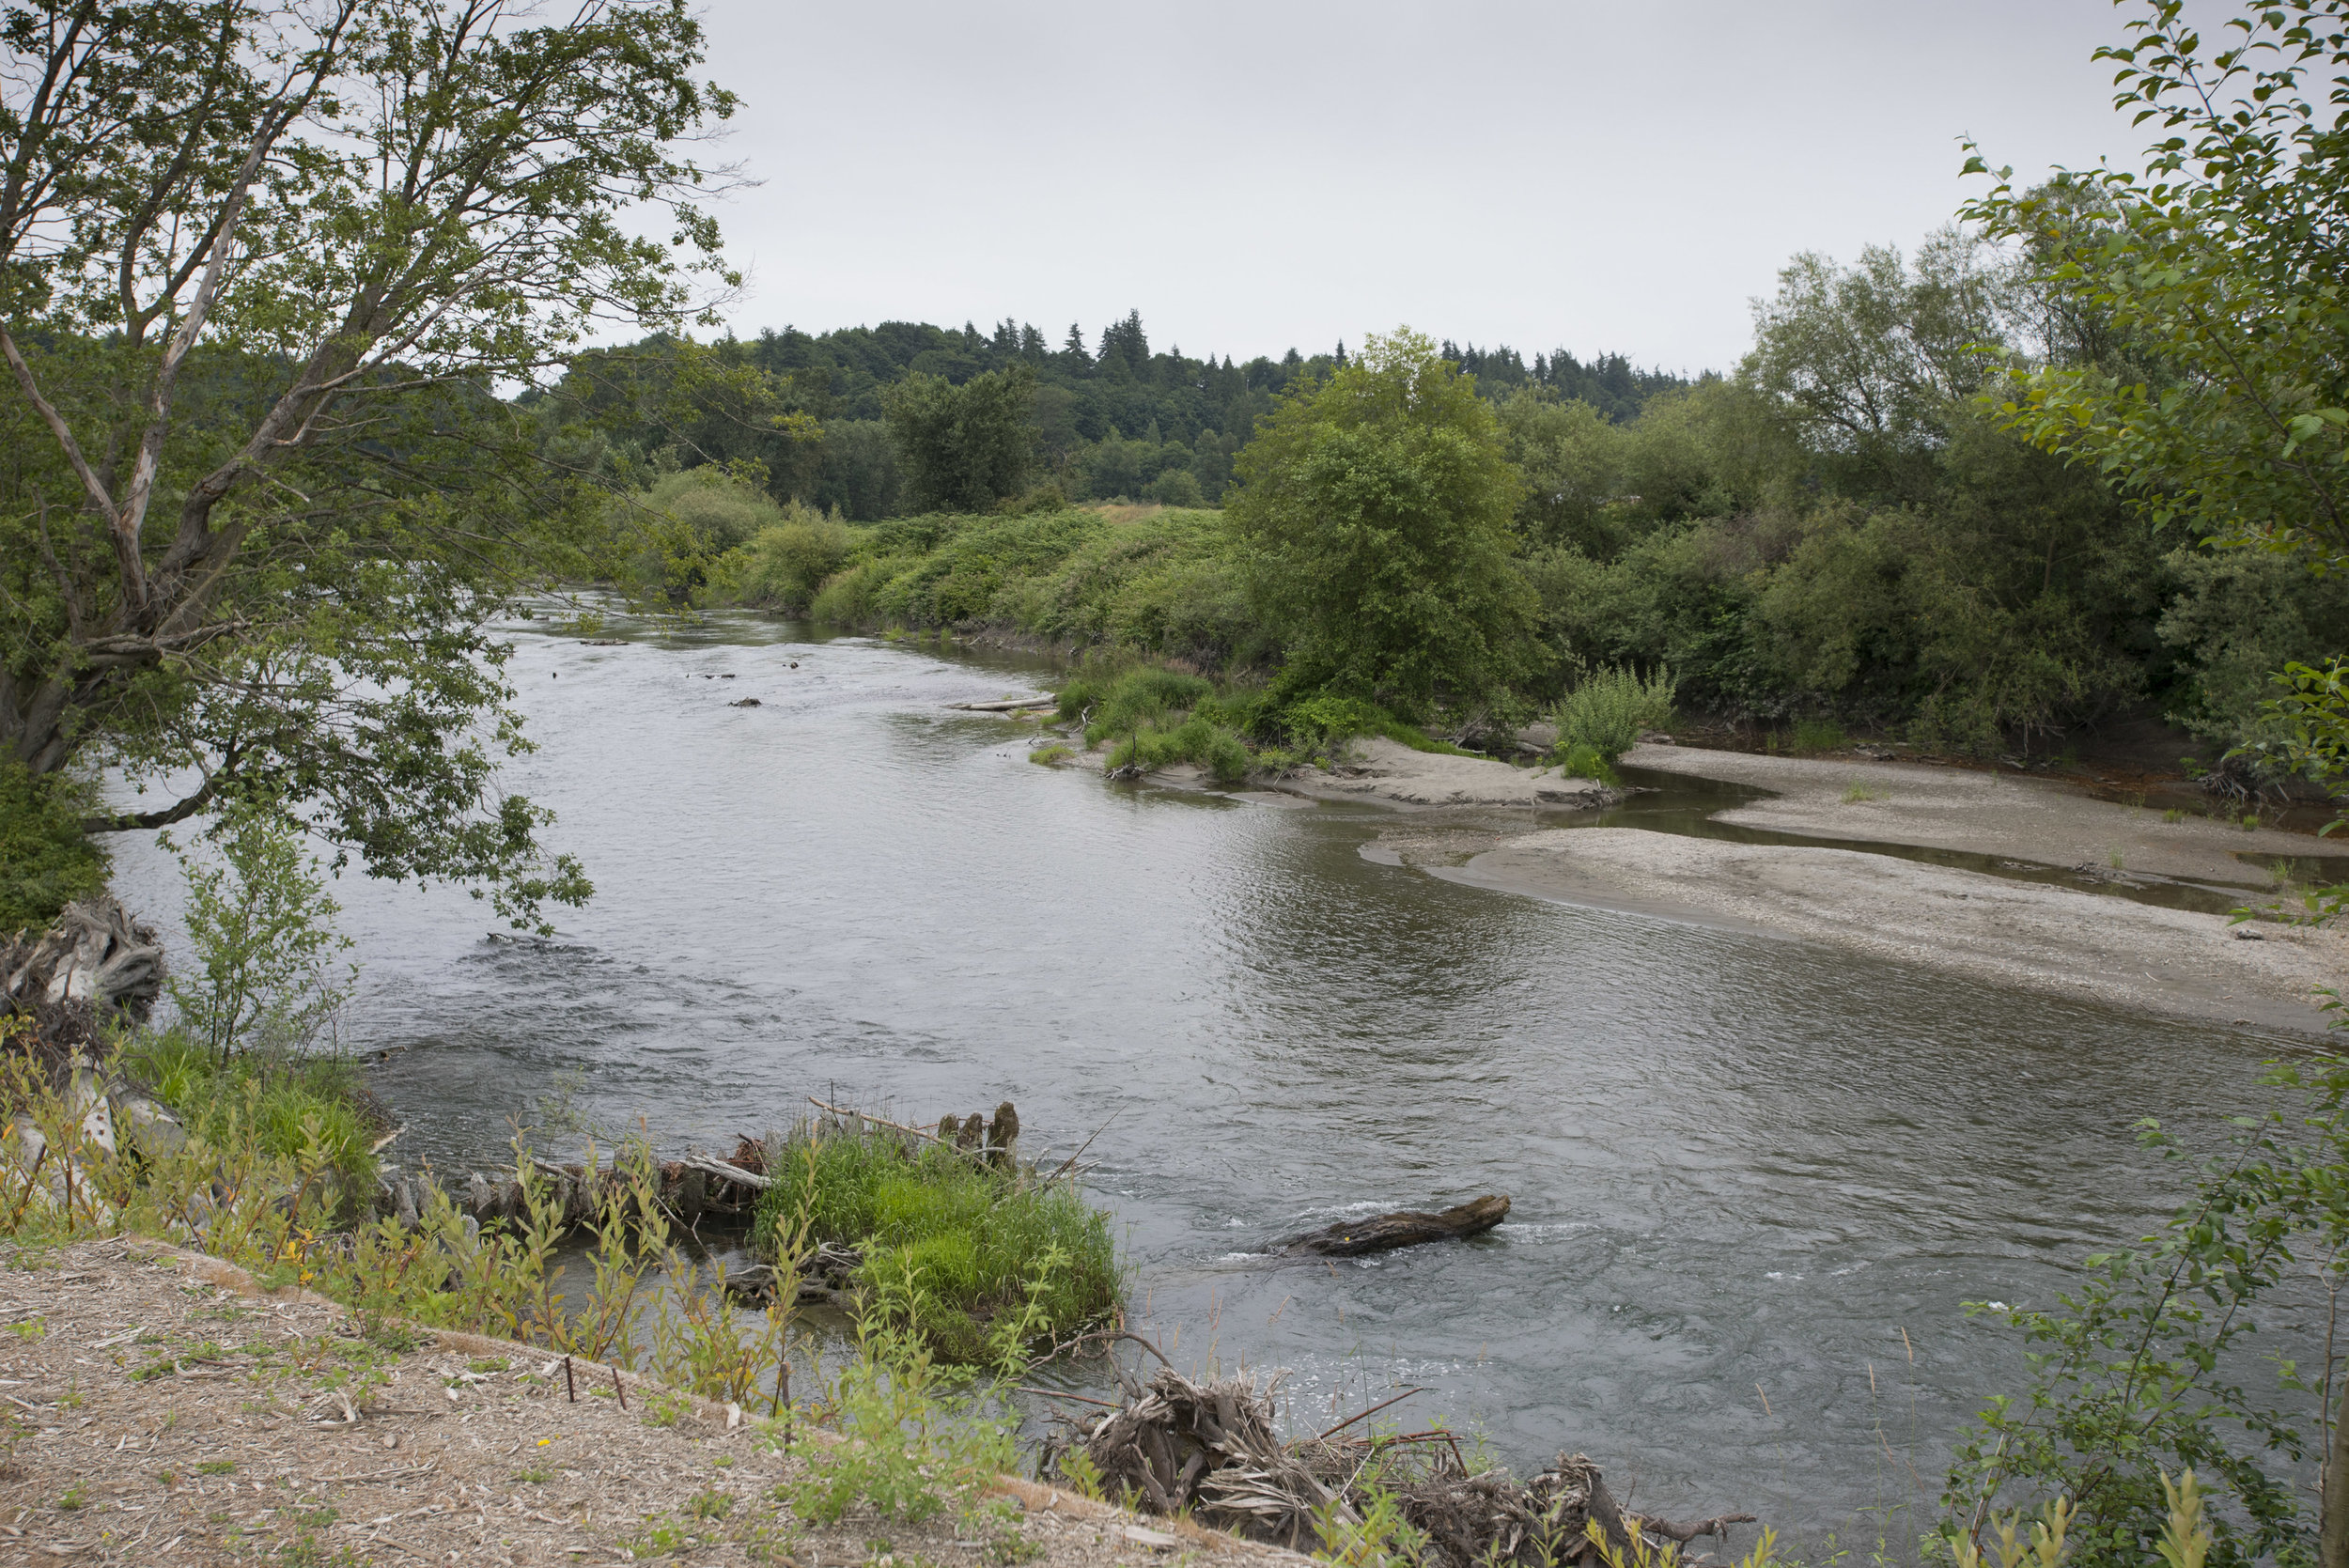 The Stillaguamish River is just 300 yards away from the entrance to the Natural Milk Dairy Farm. Photo by Hannah Letinich.